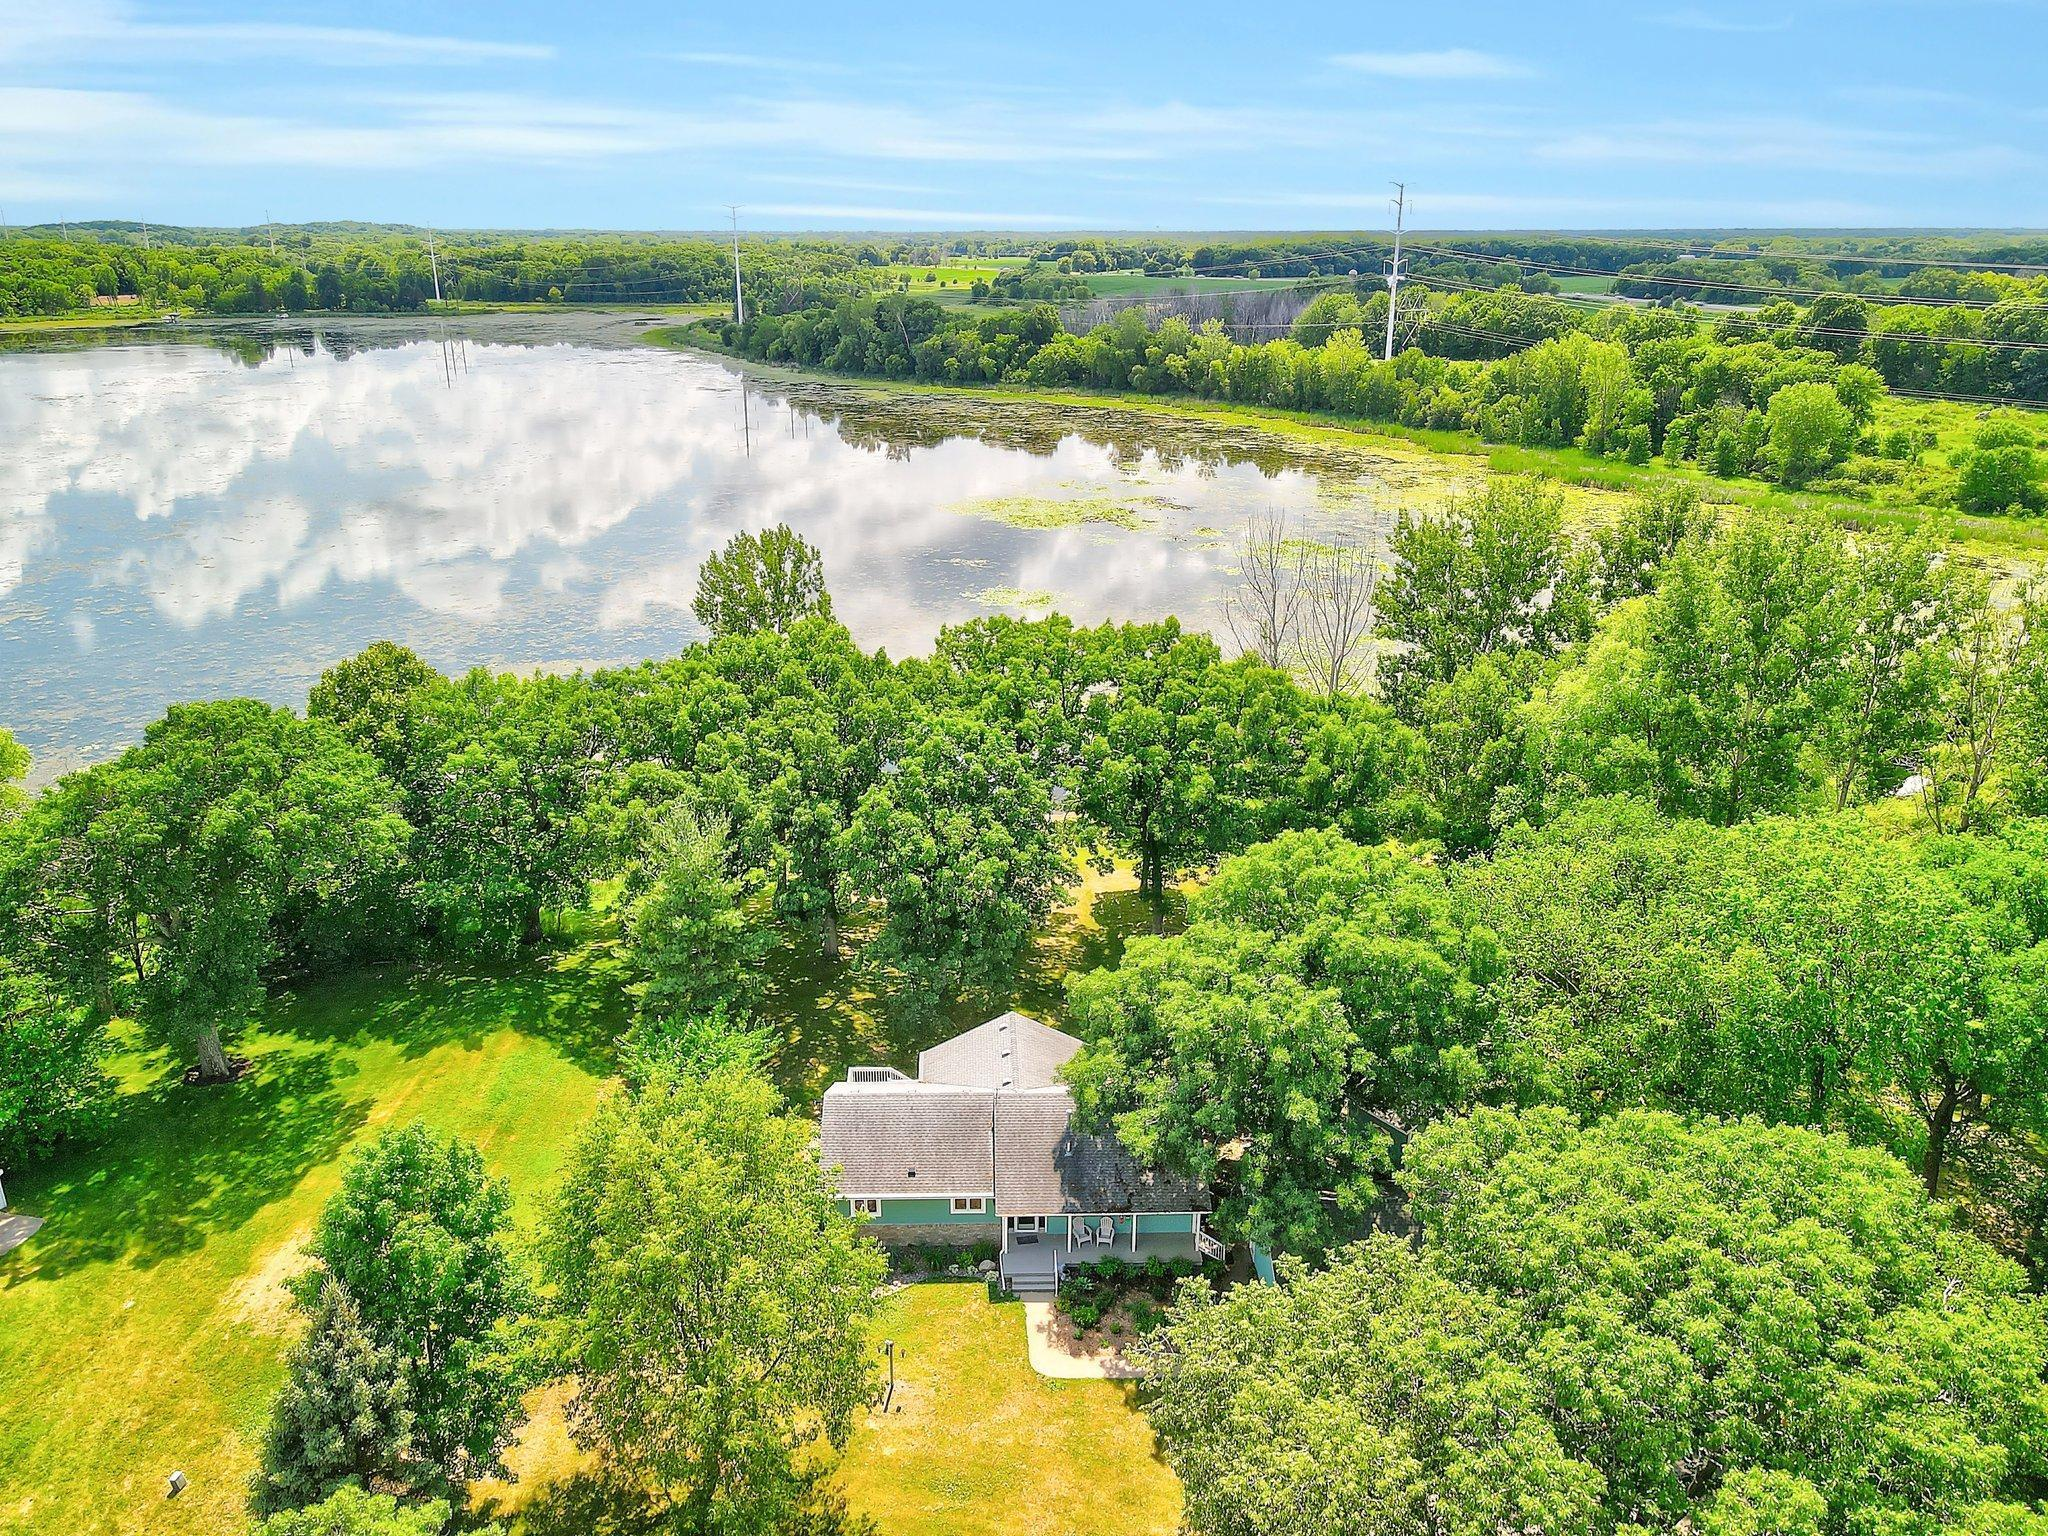 Welcome to your own private retreat on Green Lake with 2.5 acres and over 450' of lake shore, gently sloped from the house to the lake.  Wonderful front porch, 3 season porch, deck and new windows to appreciate nature views.  Main floor bedroom with private bath, living room, new custom kitchen, informal & formal dining, family room & 1/2 bath.  Walk-out level features 2 bedrooms, family room, office, 2nd kitchen, den, & laundry/mechanical room.  Lots of recent updates including:  3rd bedroom, new septic mound, air-conditioner, furnace, plumbing, shower, patio, shed, gutter covers, flooring, landscaping & more. Private road accessible by appointment only.